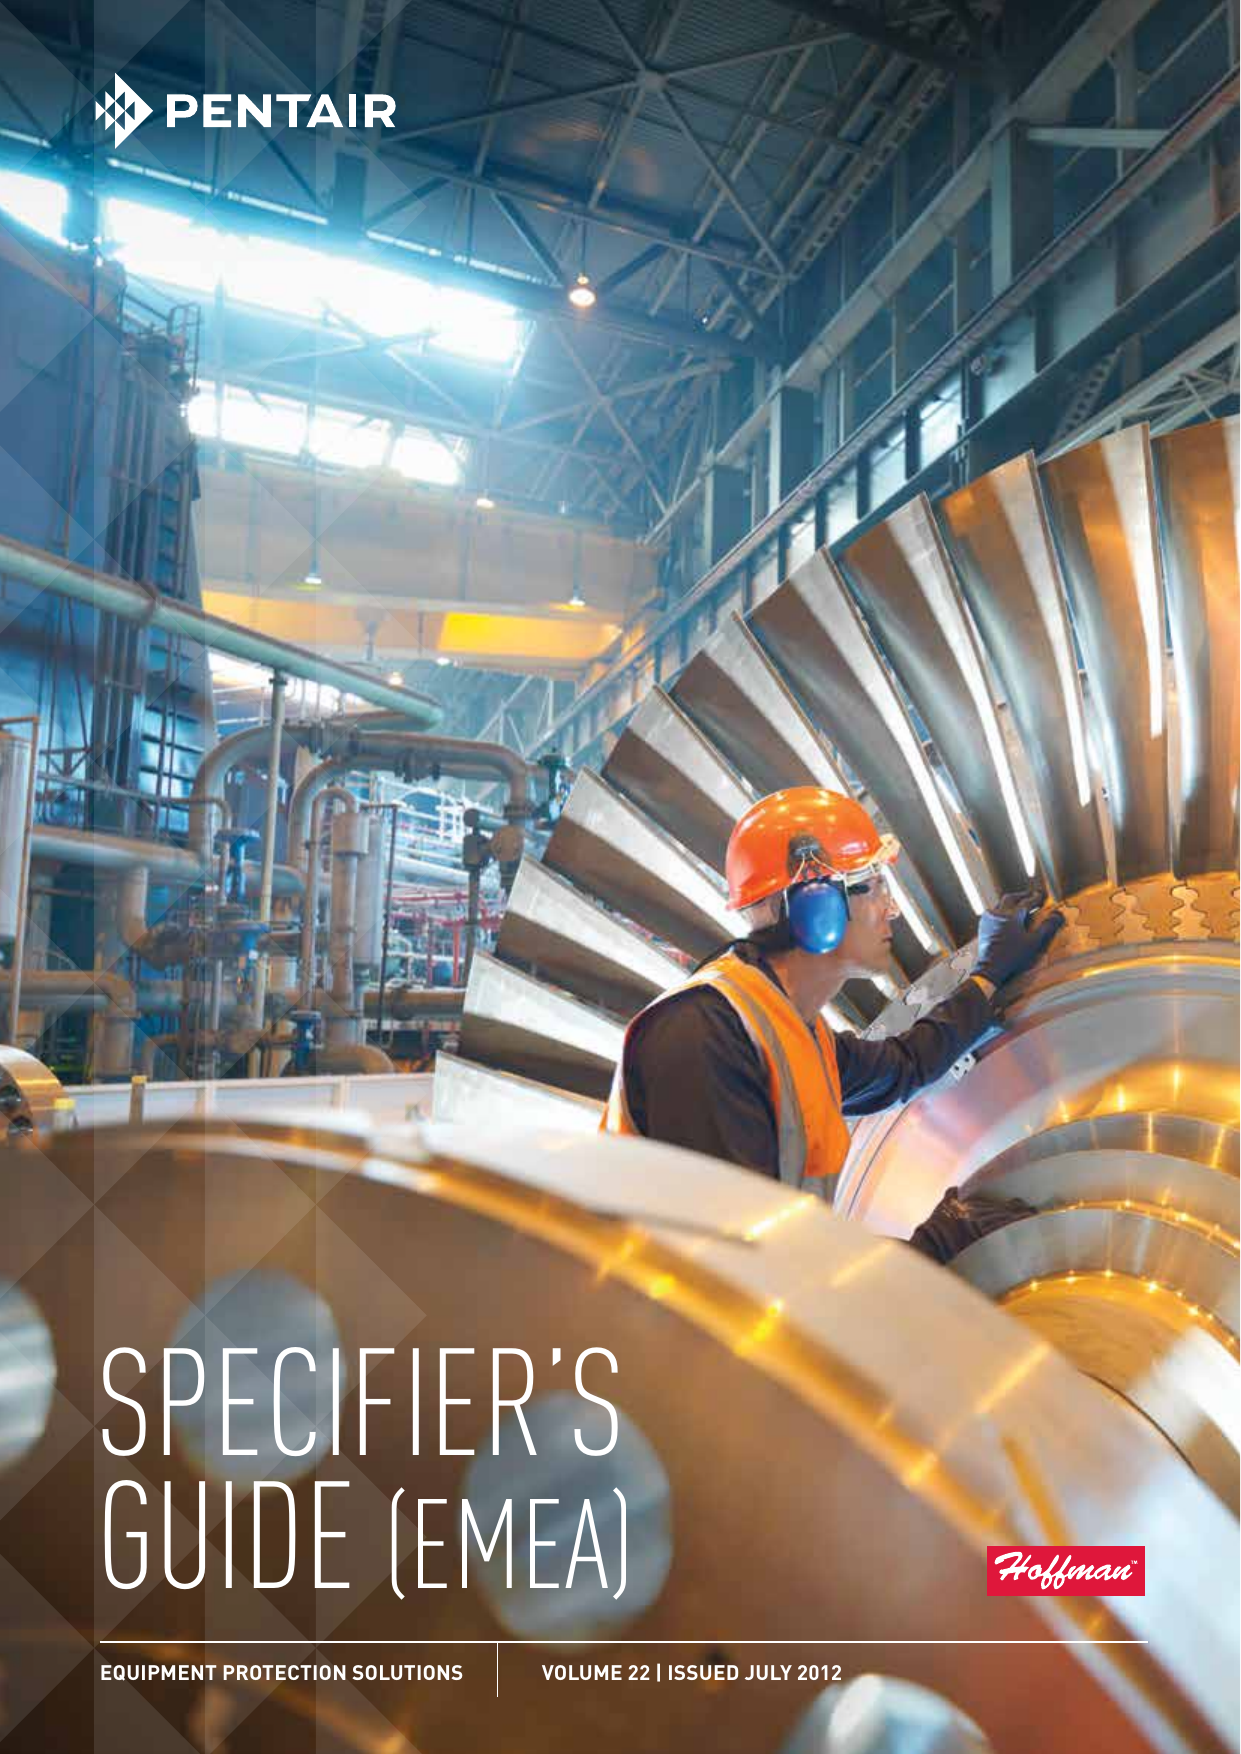 Hoffman Specifier`s Guide EMEA: Equipment Protection Solutions on